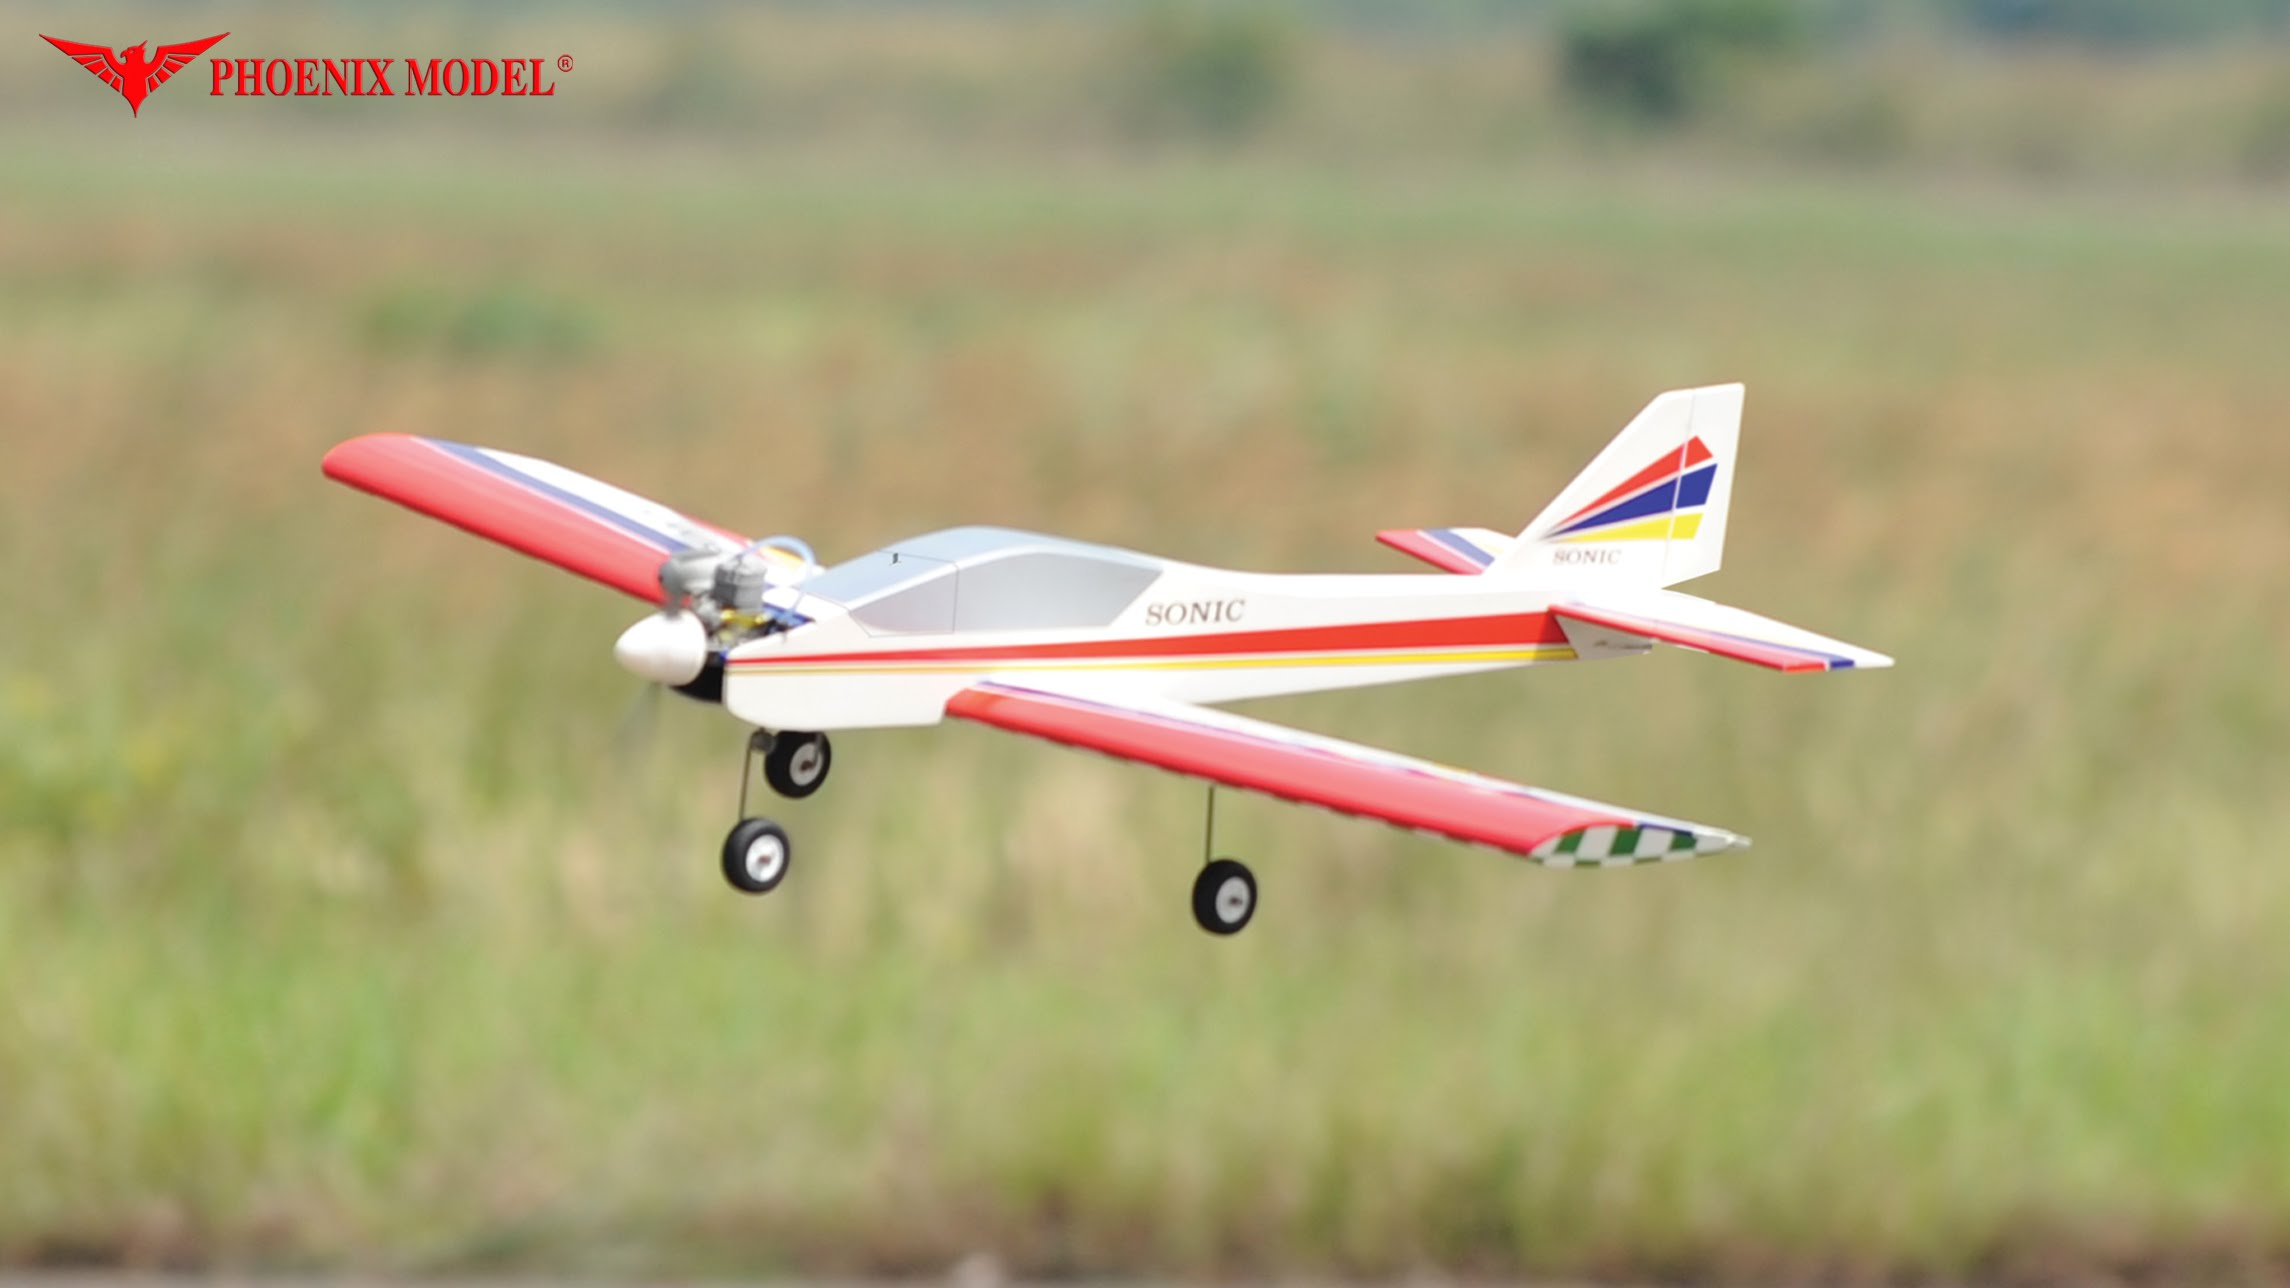 (PH125) PHOENIX SONIC LOW WING SPORTS PLANE FOR .25 - .32 SIZE E